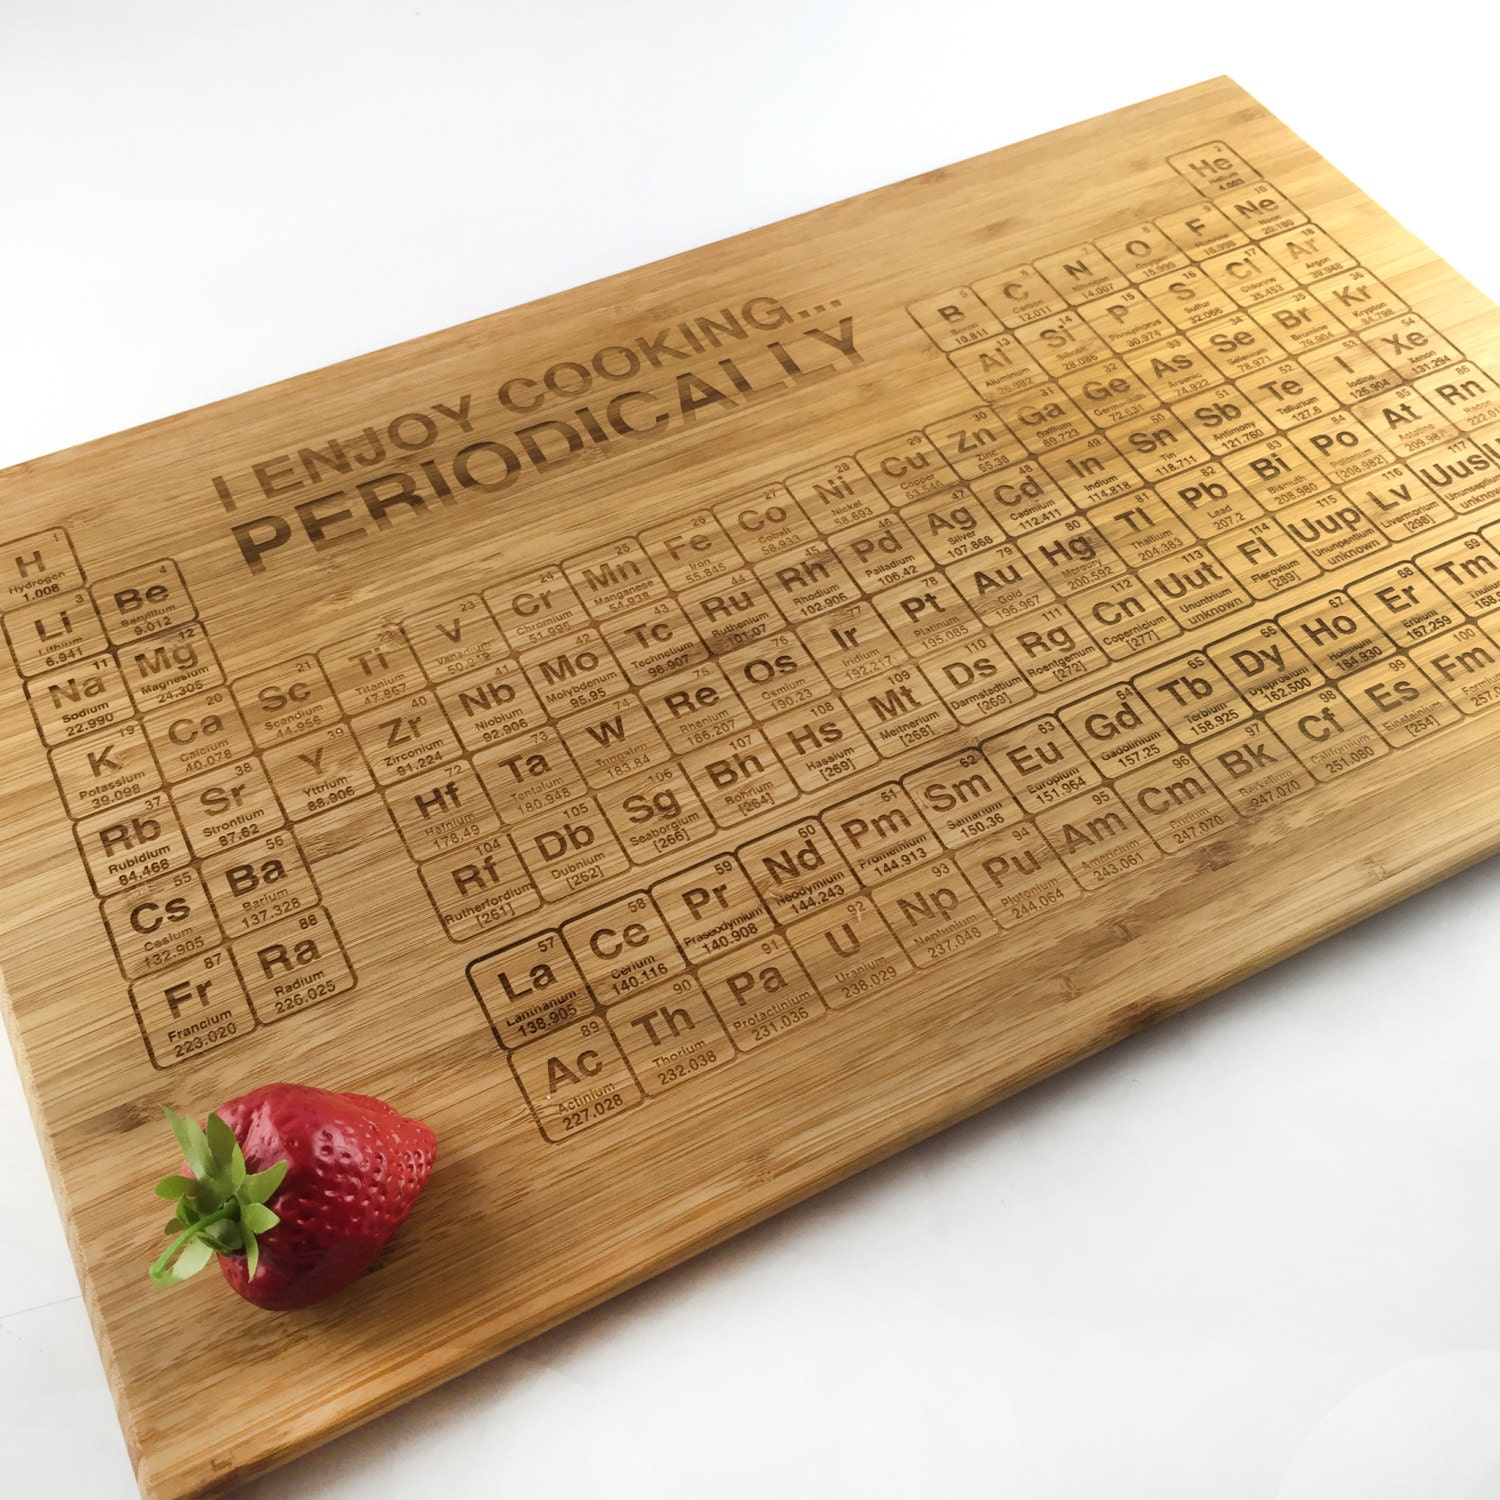 Periodic table cutting board geek nerd i enjoy cooking periodically science gift laser engraved - Periodic table chopping board ...